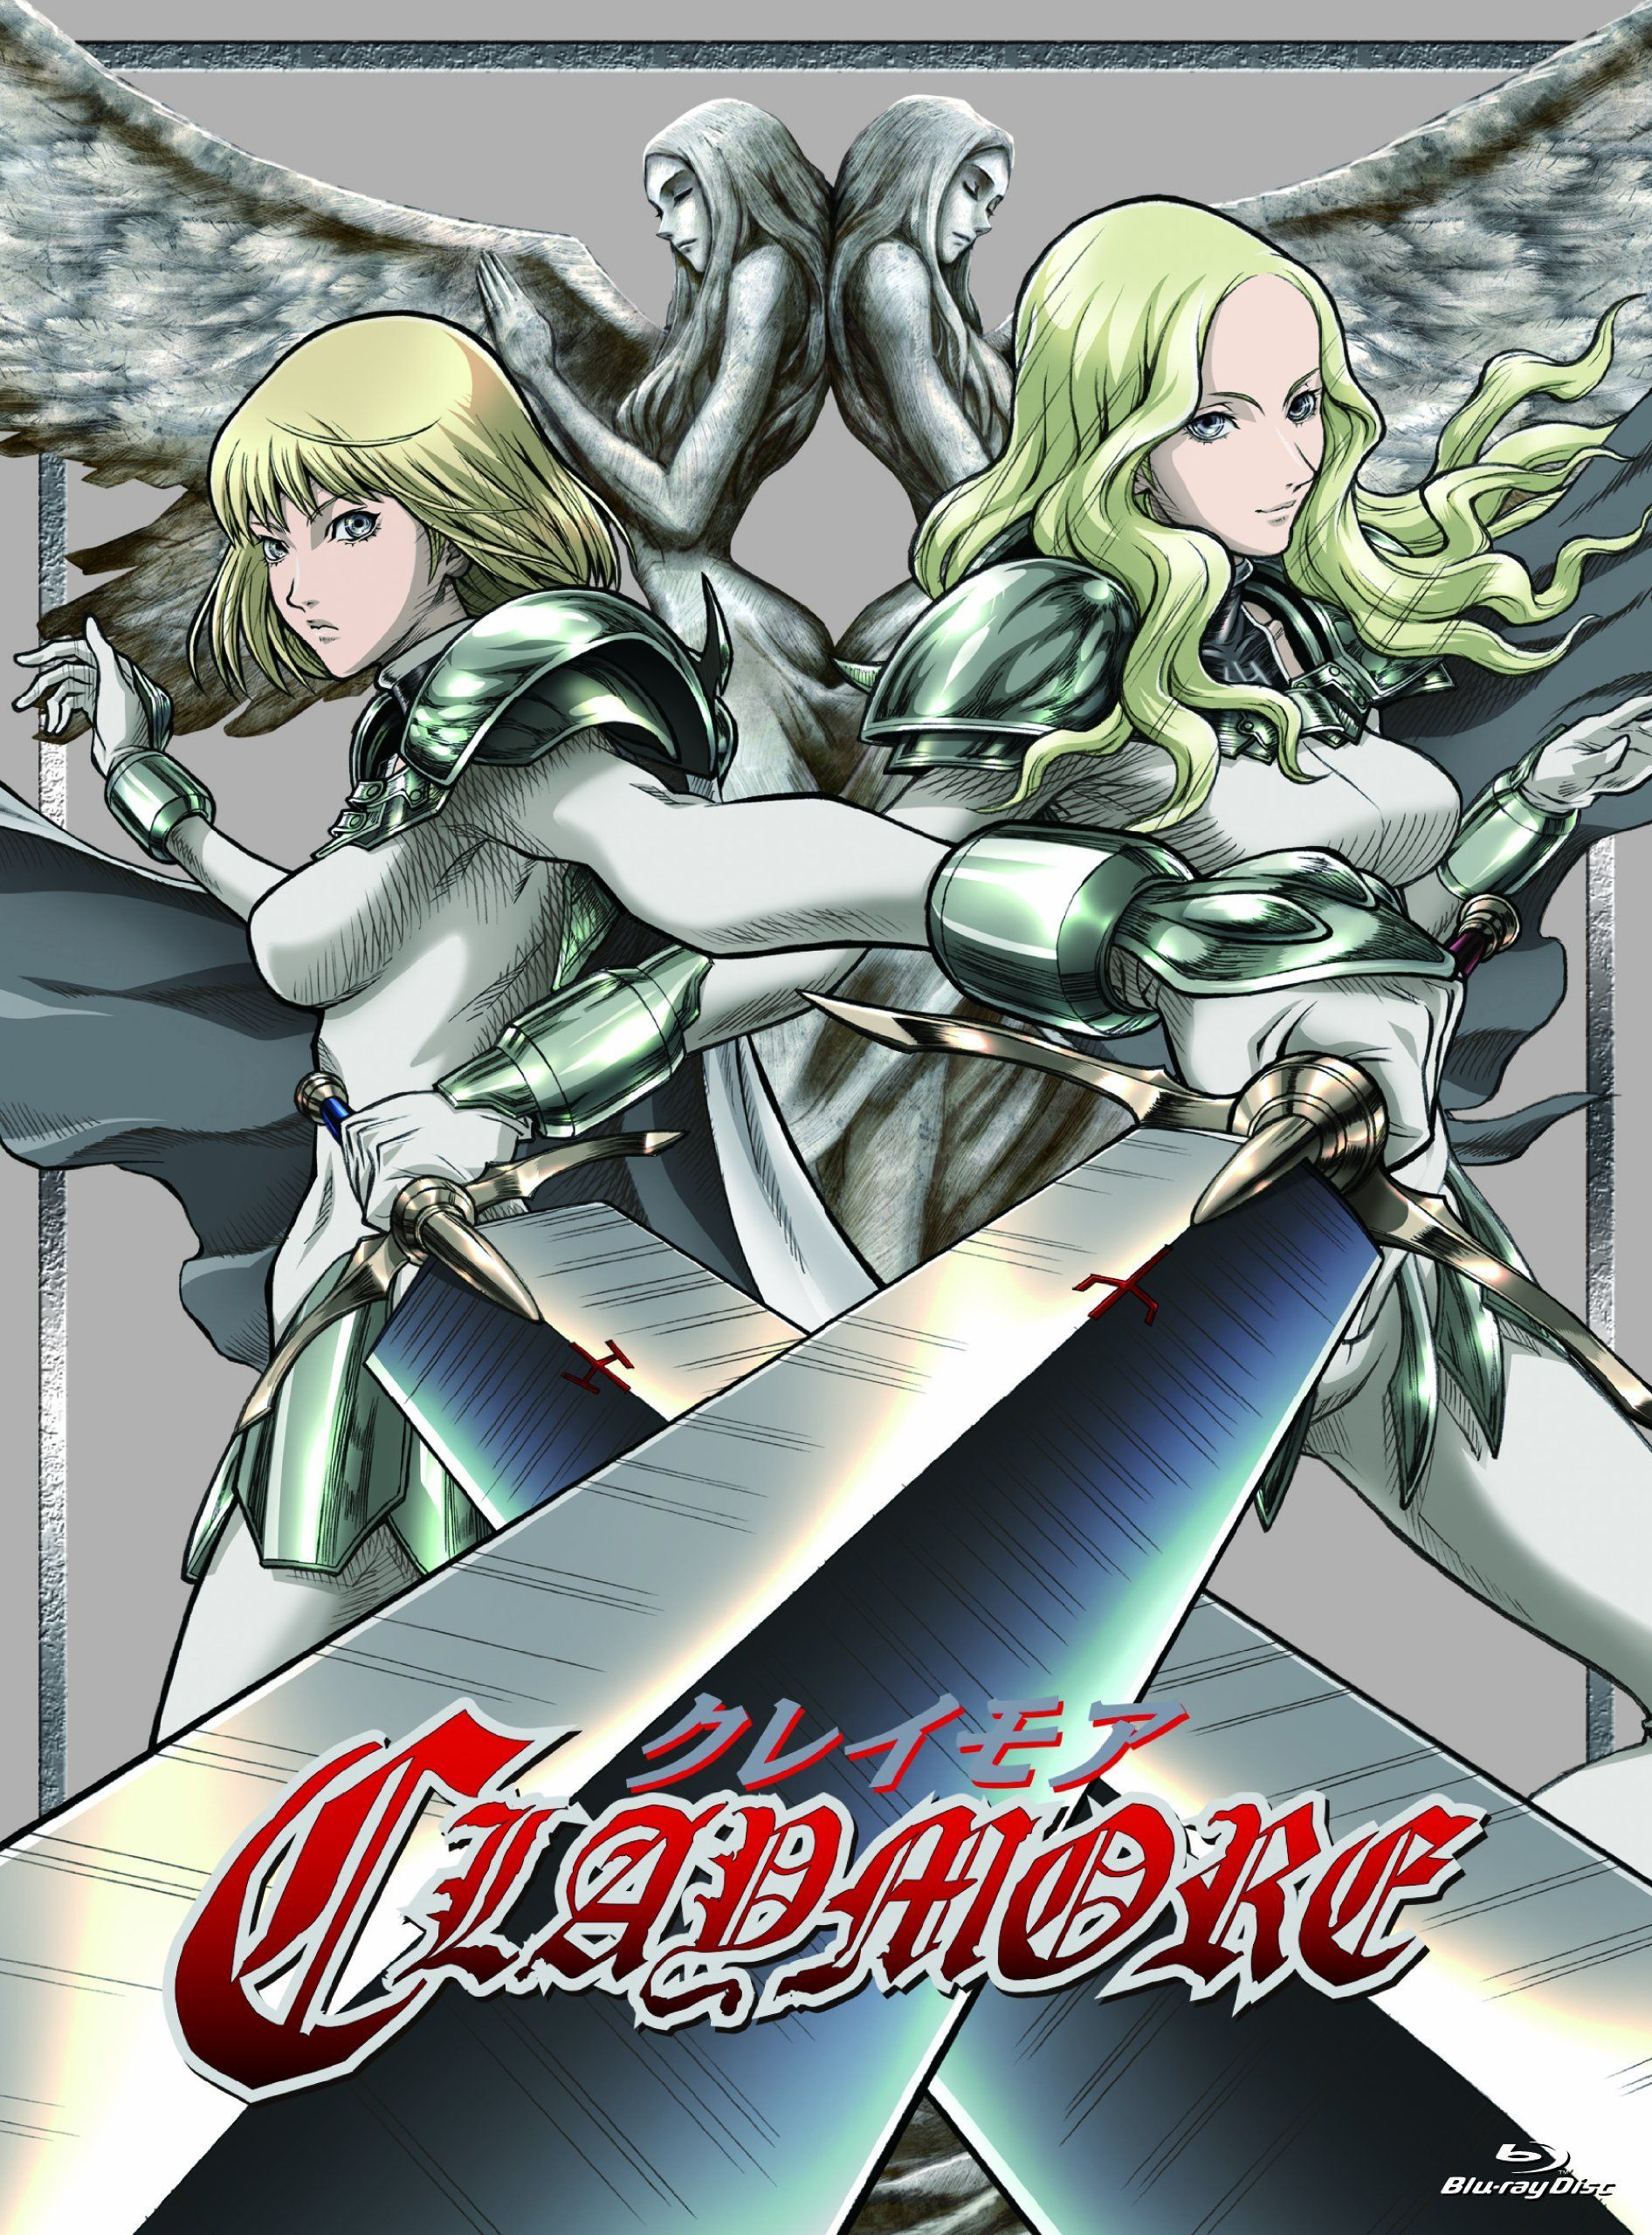 Claymore Clare and Theresa Anime, Claymore anime